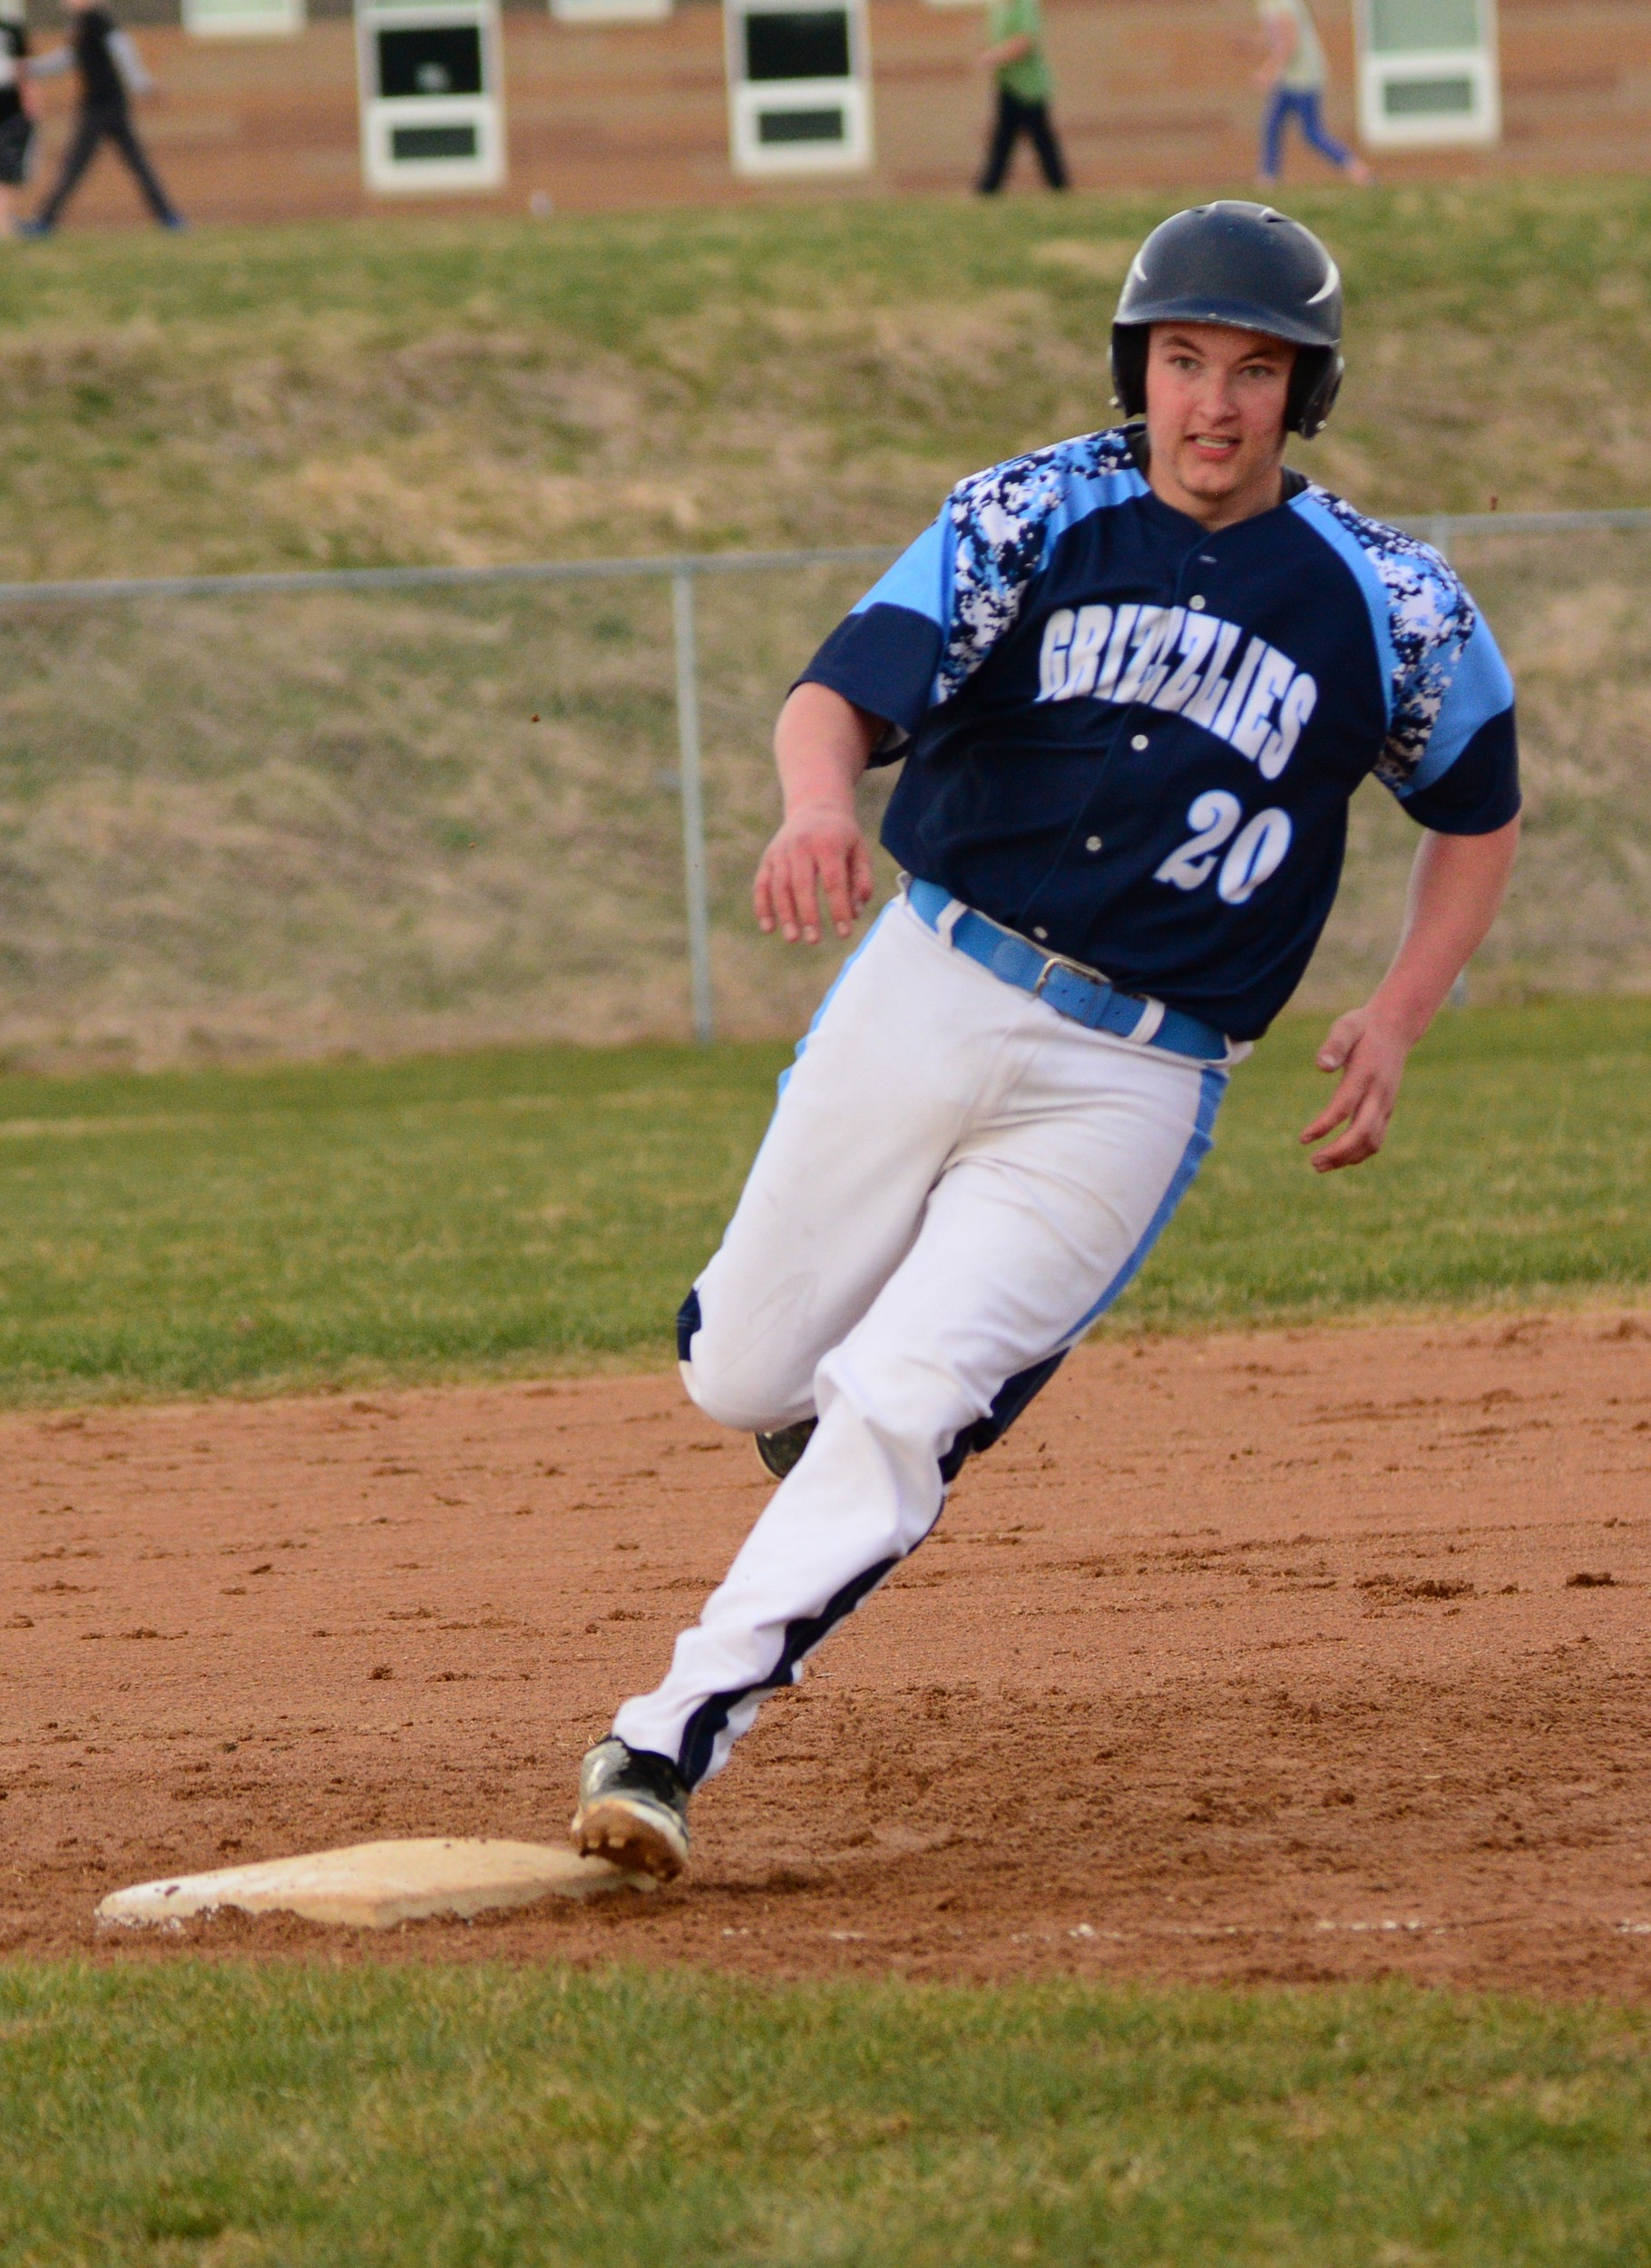 North Woods senior Colton Arvila picks up the sign as he rounds third base and scores in the Grizzlies' 5-4 home win over Mesabi East on Thursday.